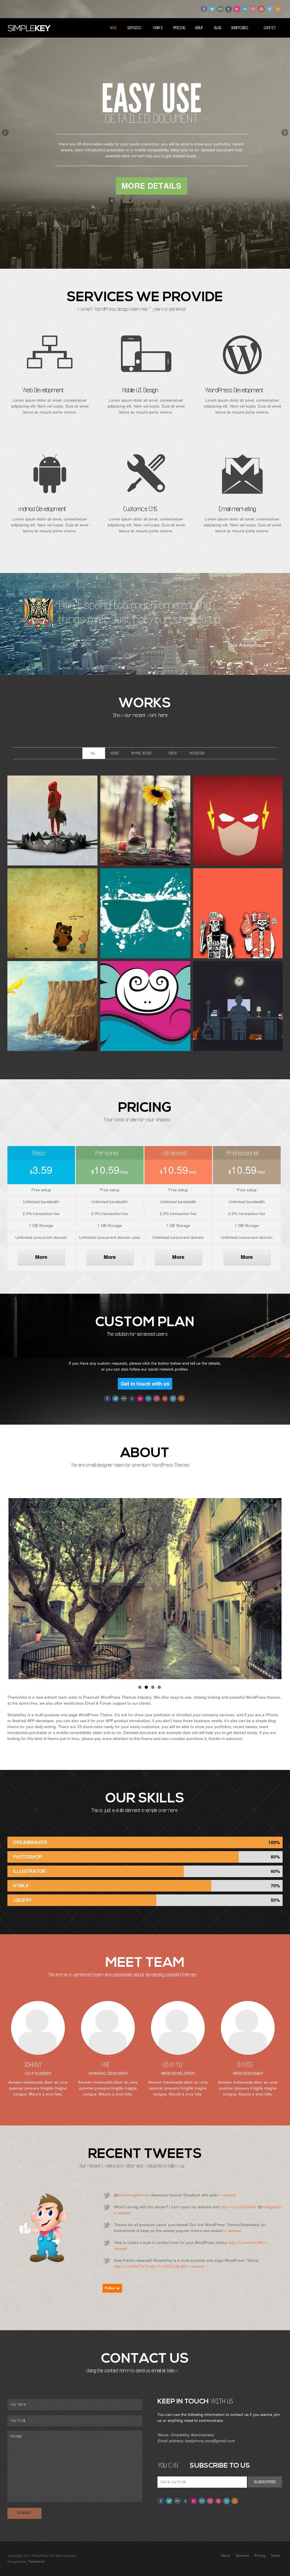 simplekey wordpress theme screenshot